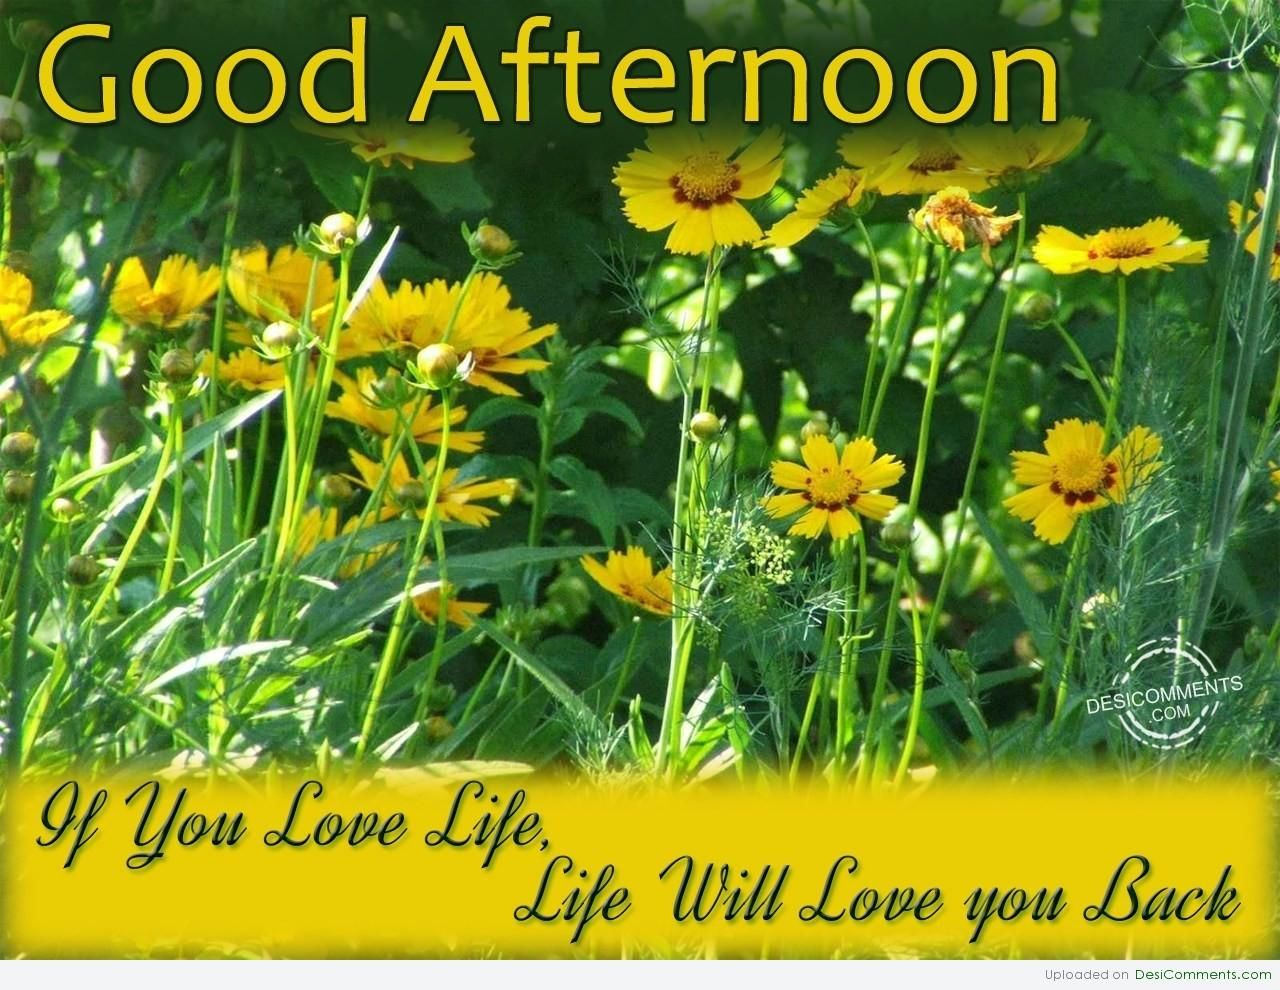 Good Afternoon Pictures, Photos, And Images For Facebook